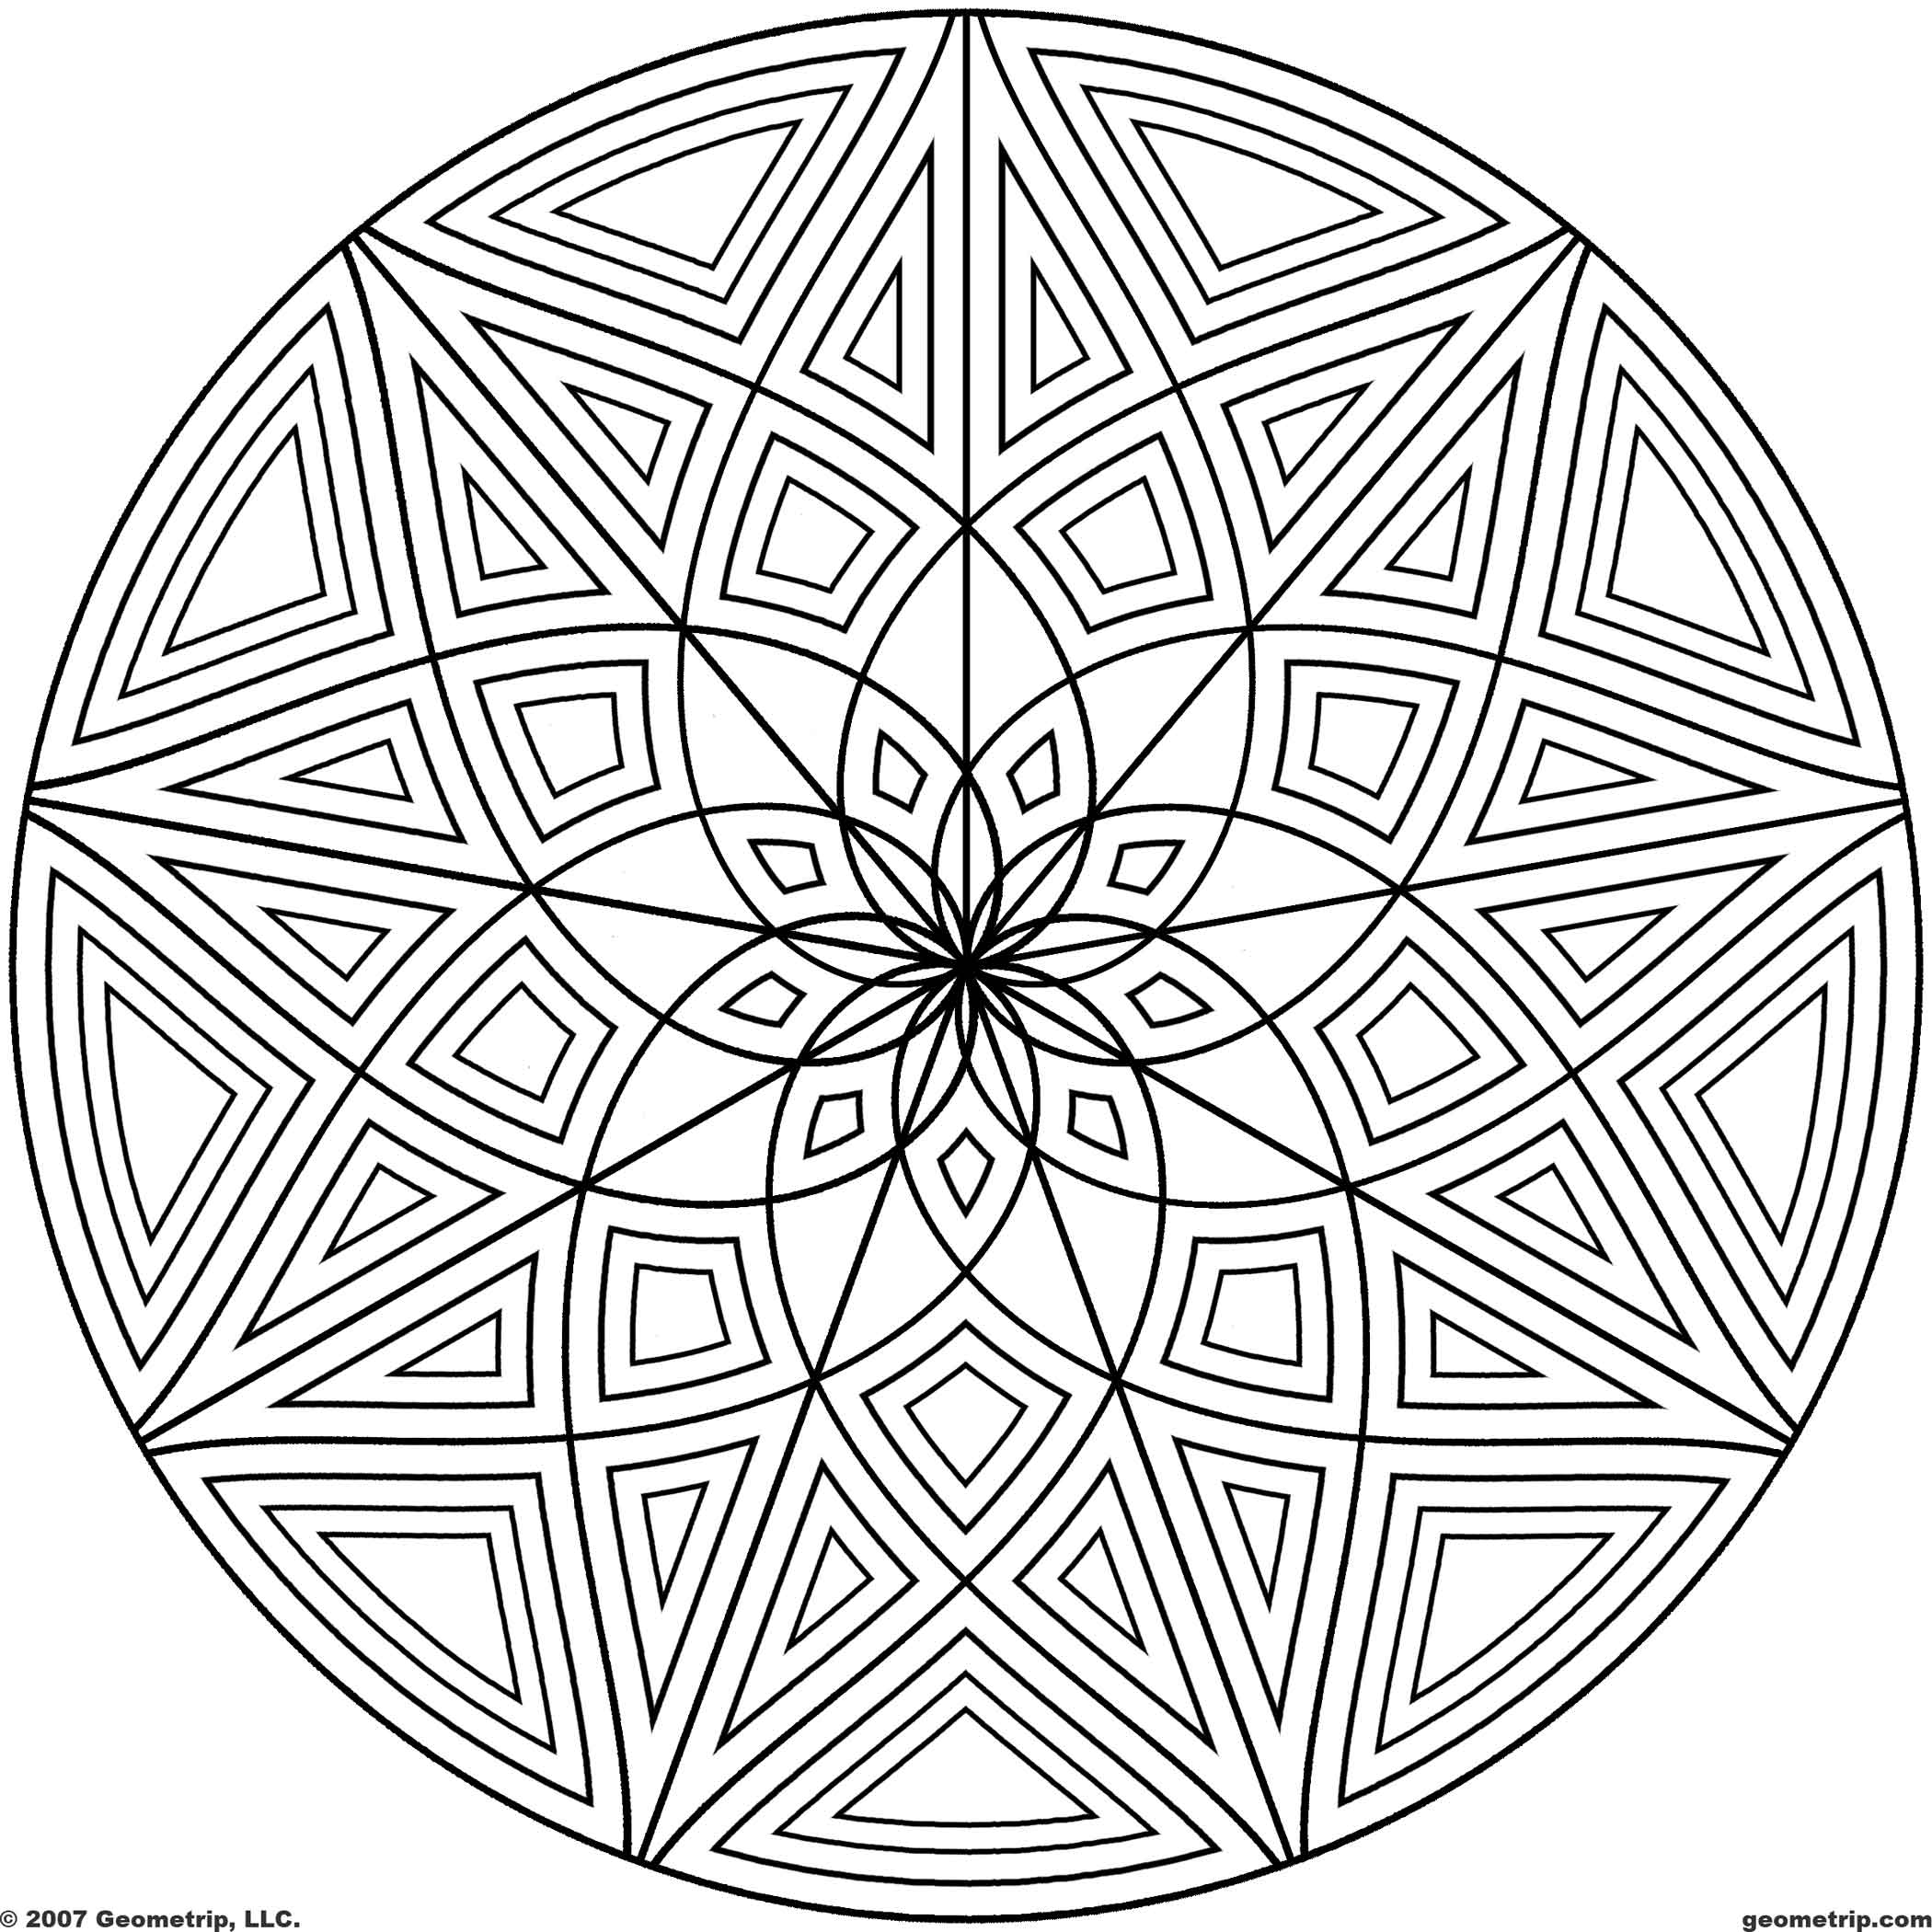 Geometric design coloring page coloring home for Geometric coloring pages online